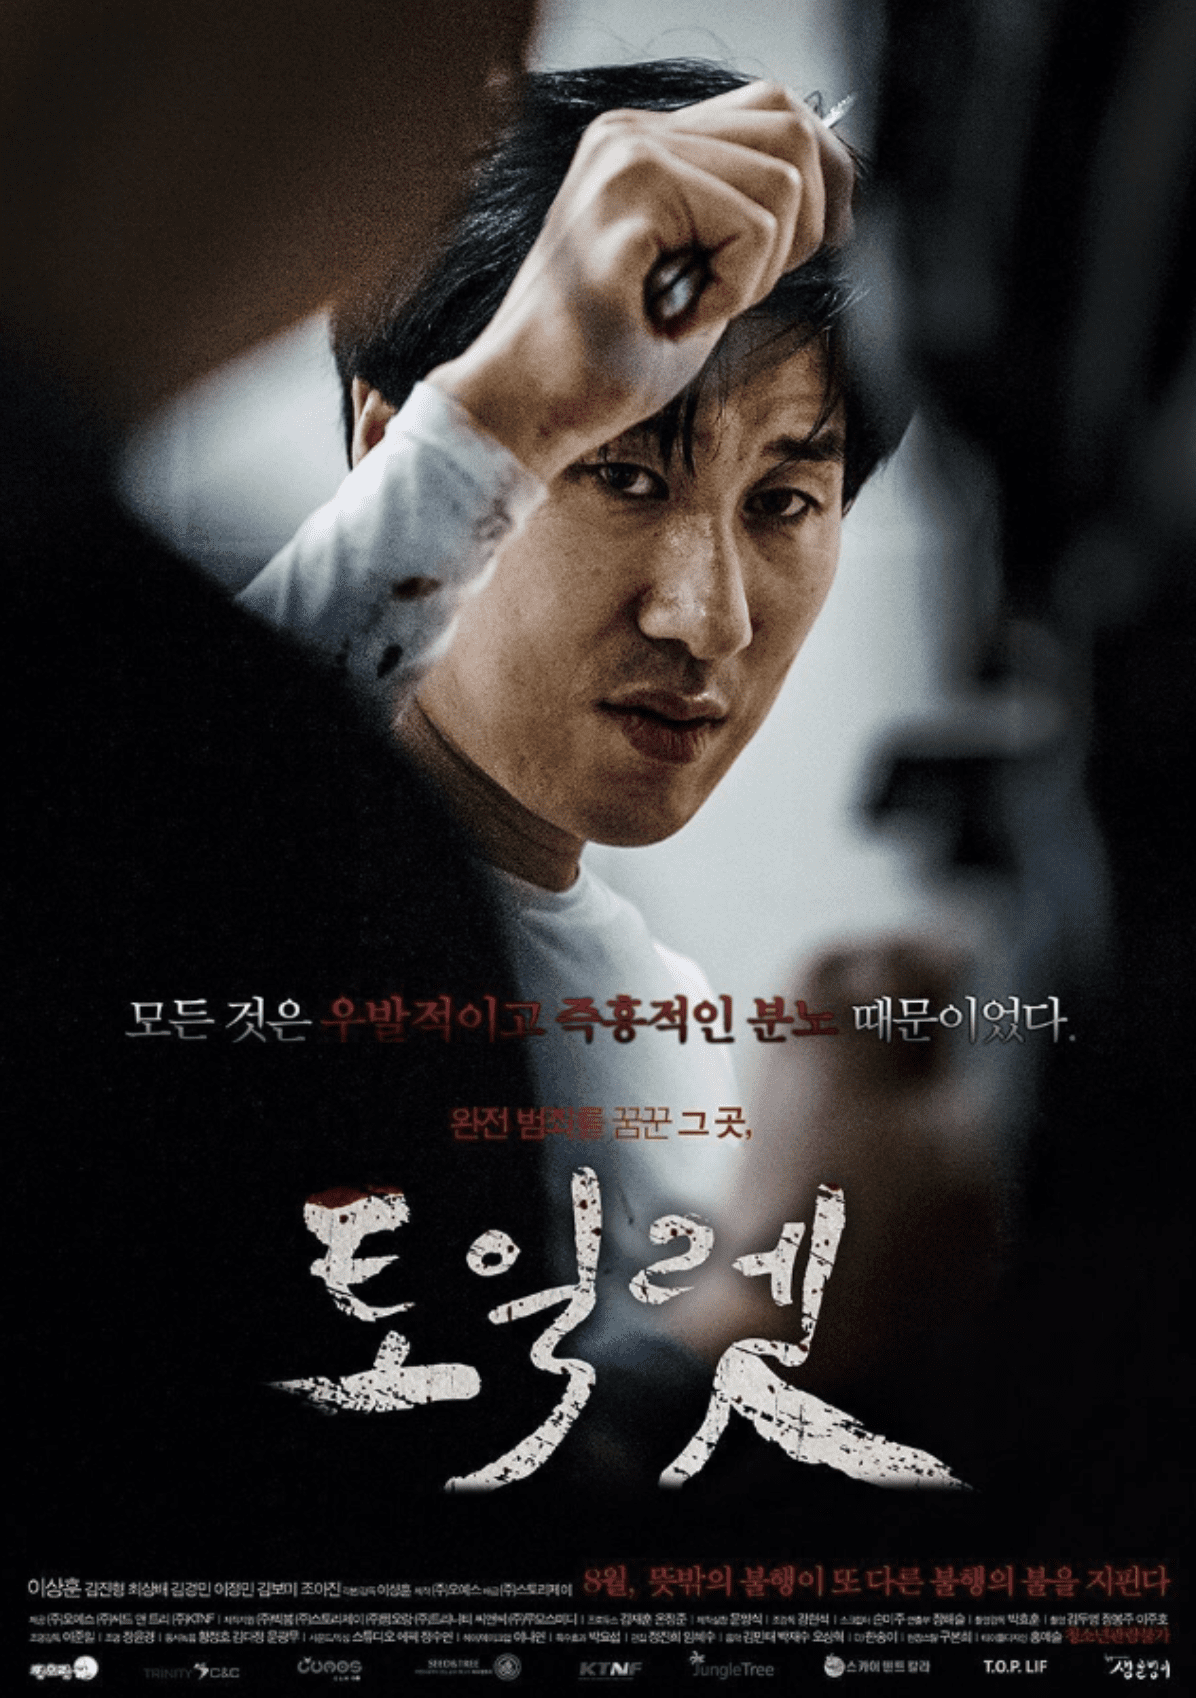 Upcoming Film Toilet Is Under Controversy Due To Similarities With Real-Life Murder Case